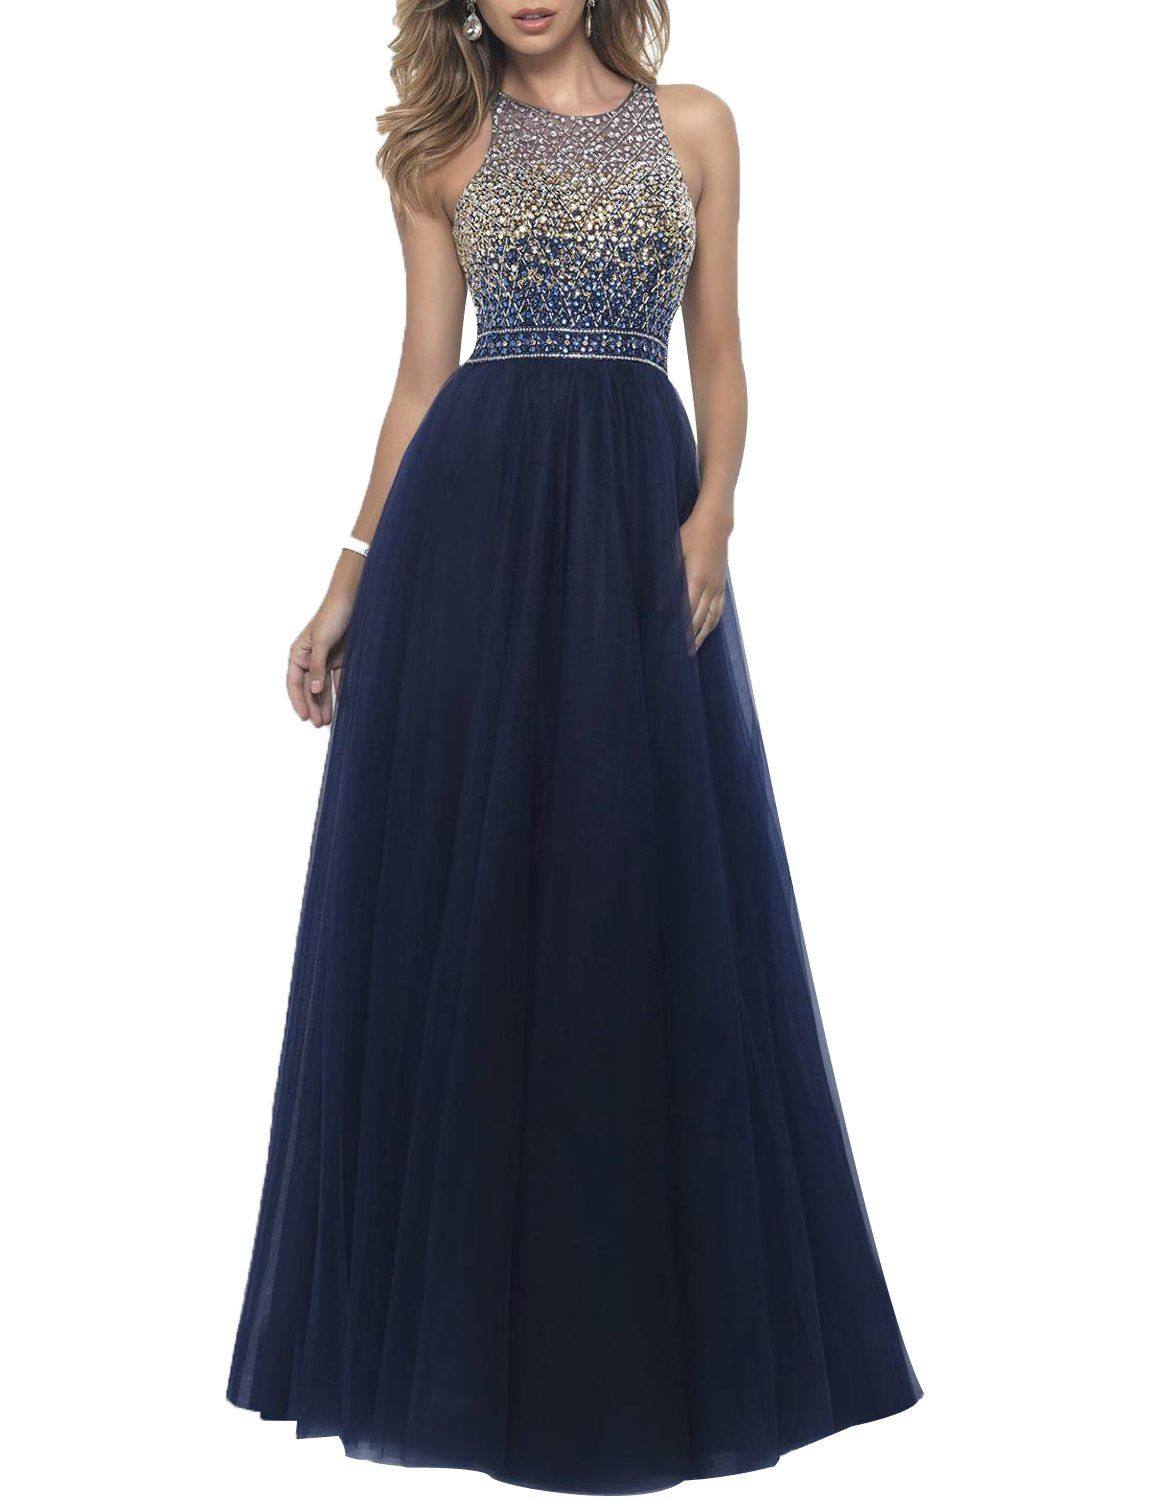 Gardenwed illusion sweetheart neckline beaded long evening prom